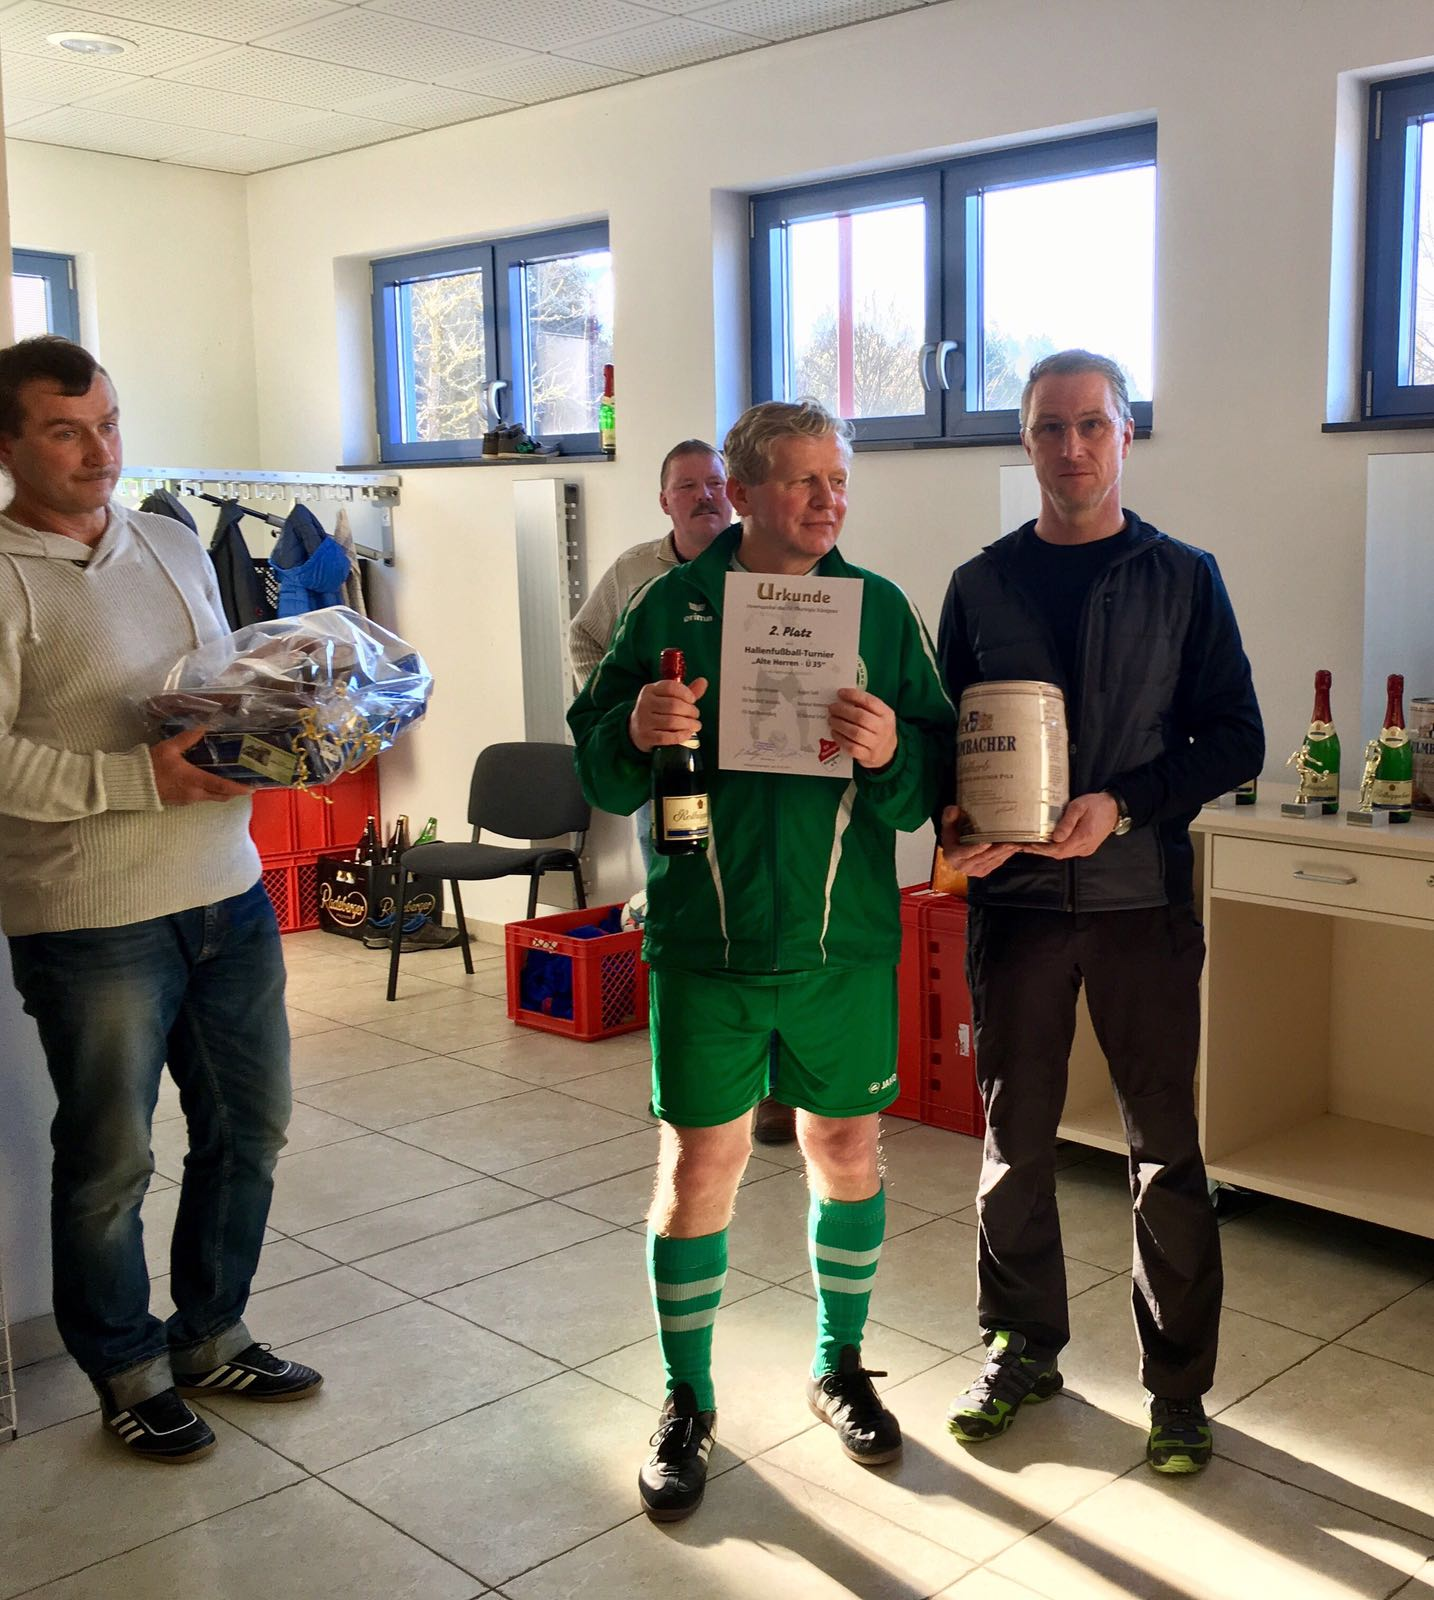 Platz 2 - TSV Bad Blankenburg